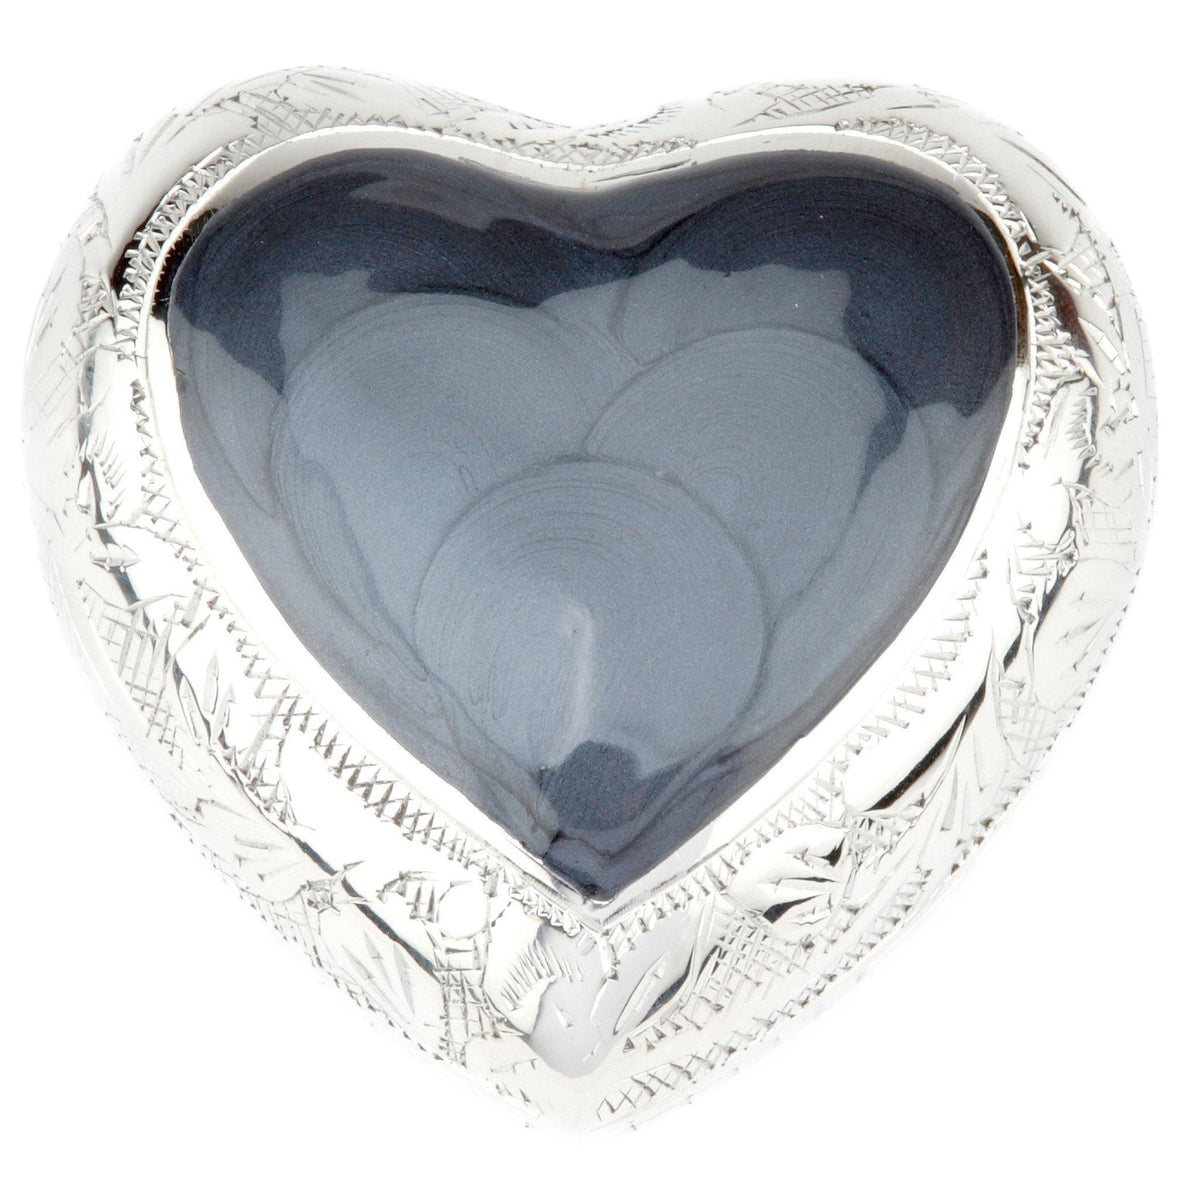 Epping Grey Heart Cremation Ashes Keepsake Mini Urn - Urns UK